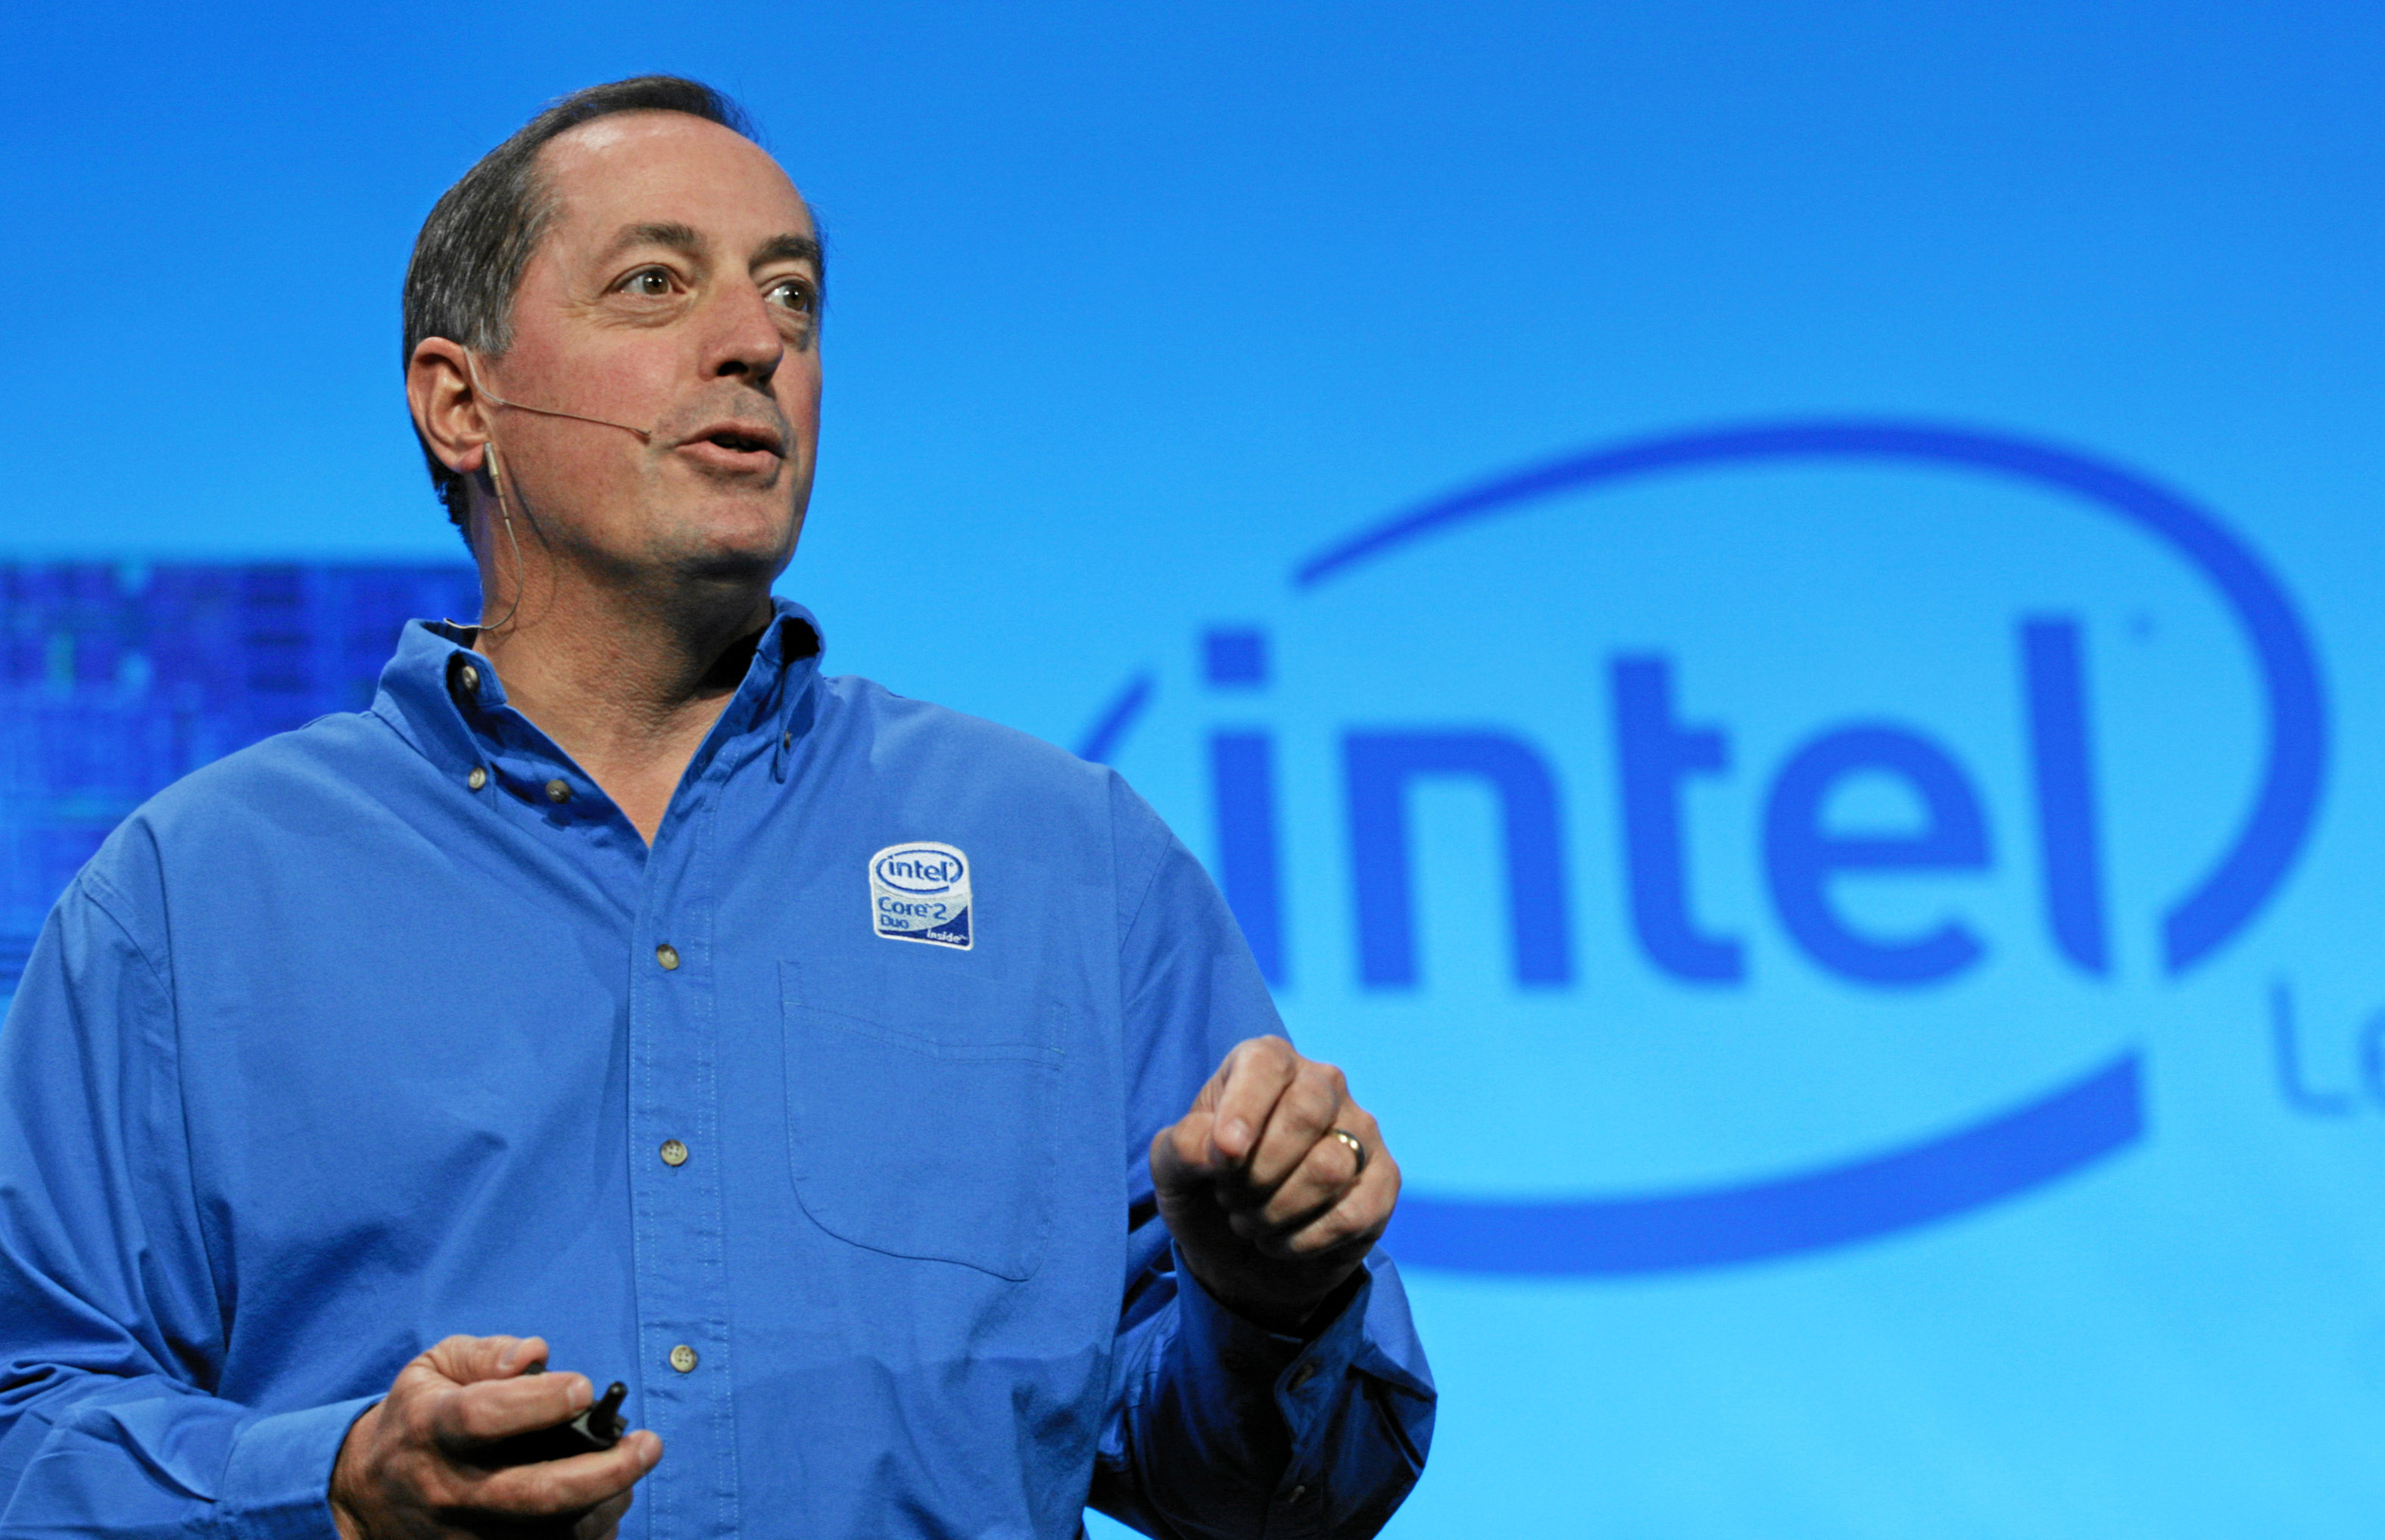 Intel-CEO-Paul-Otellini-Retiring-In-May-2013